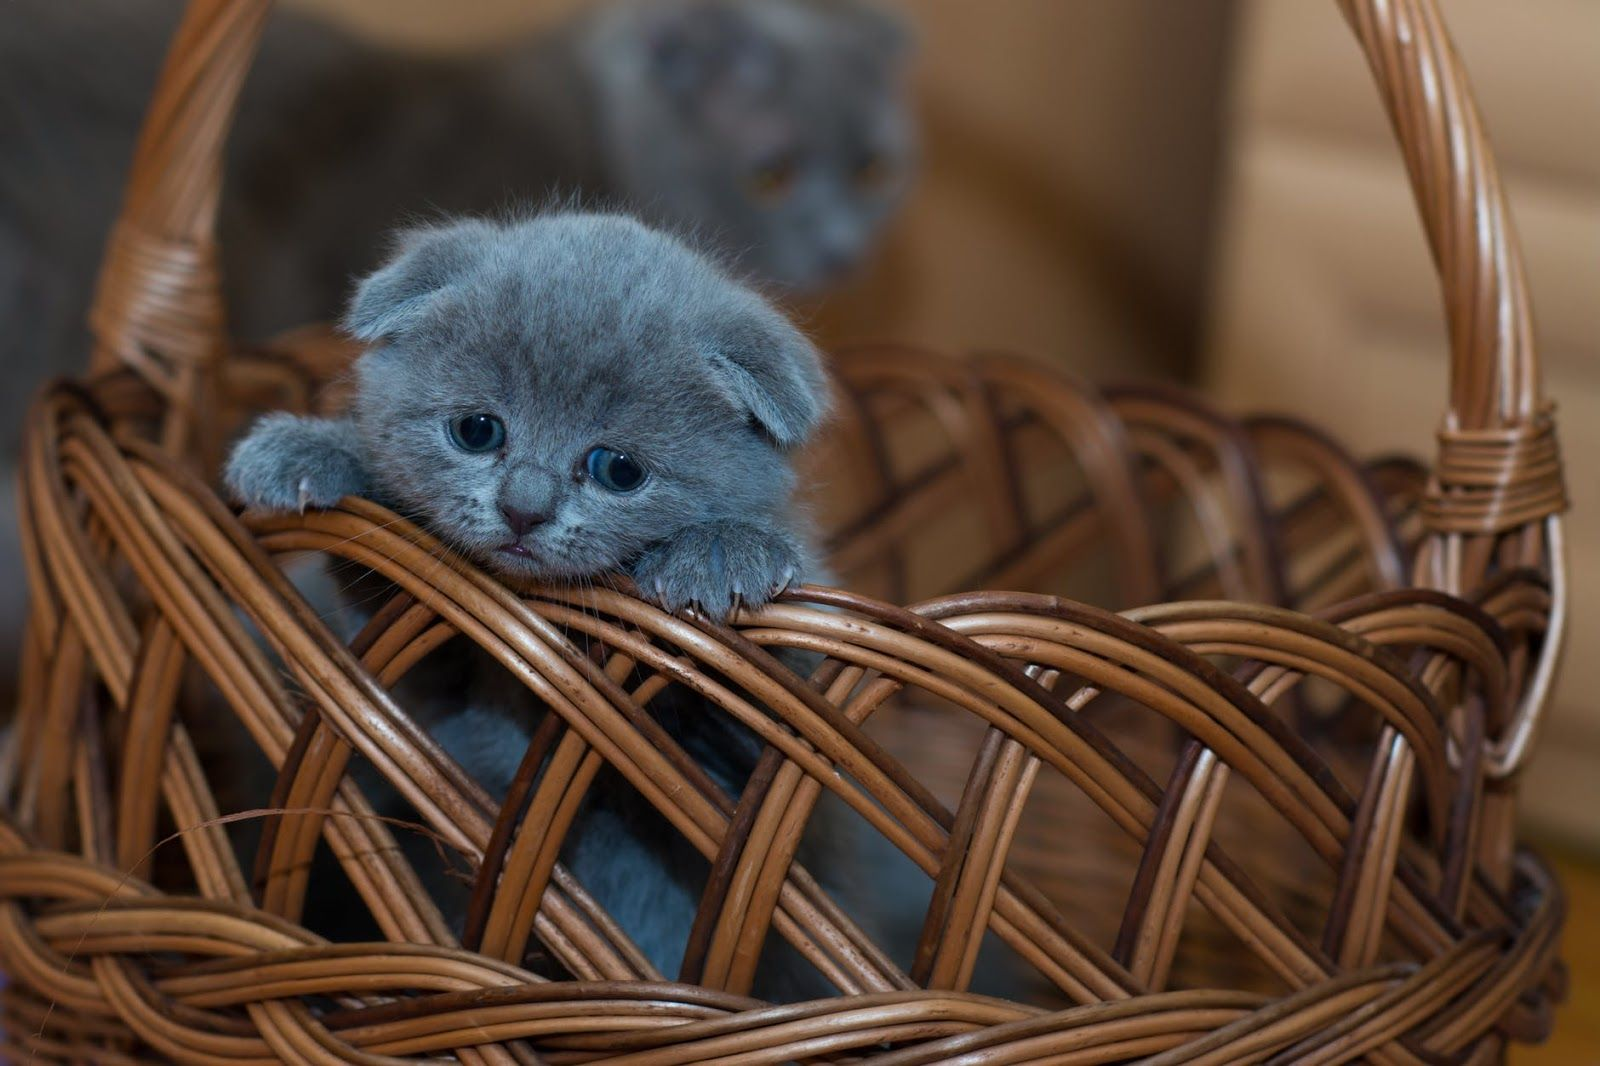 Sweet Unique Attractive Images Pics Pictures Hd Wallpapper For Whatsapp Dp Profile Cat Care Kittens Cutest Cat Lovers